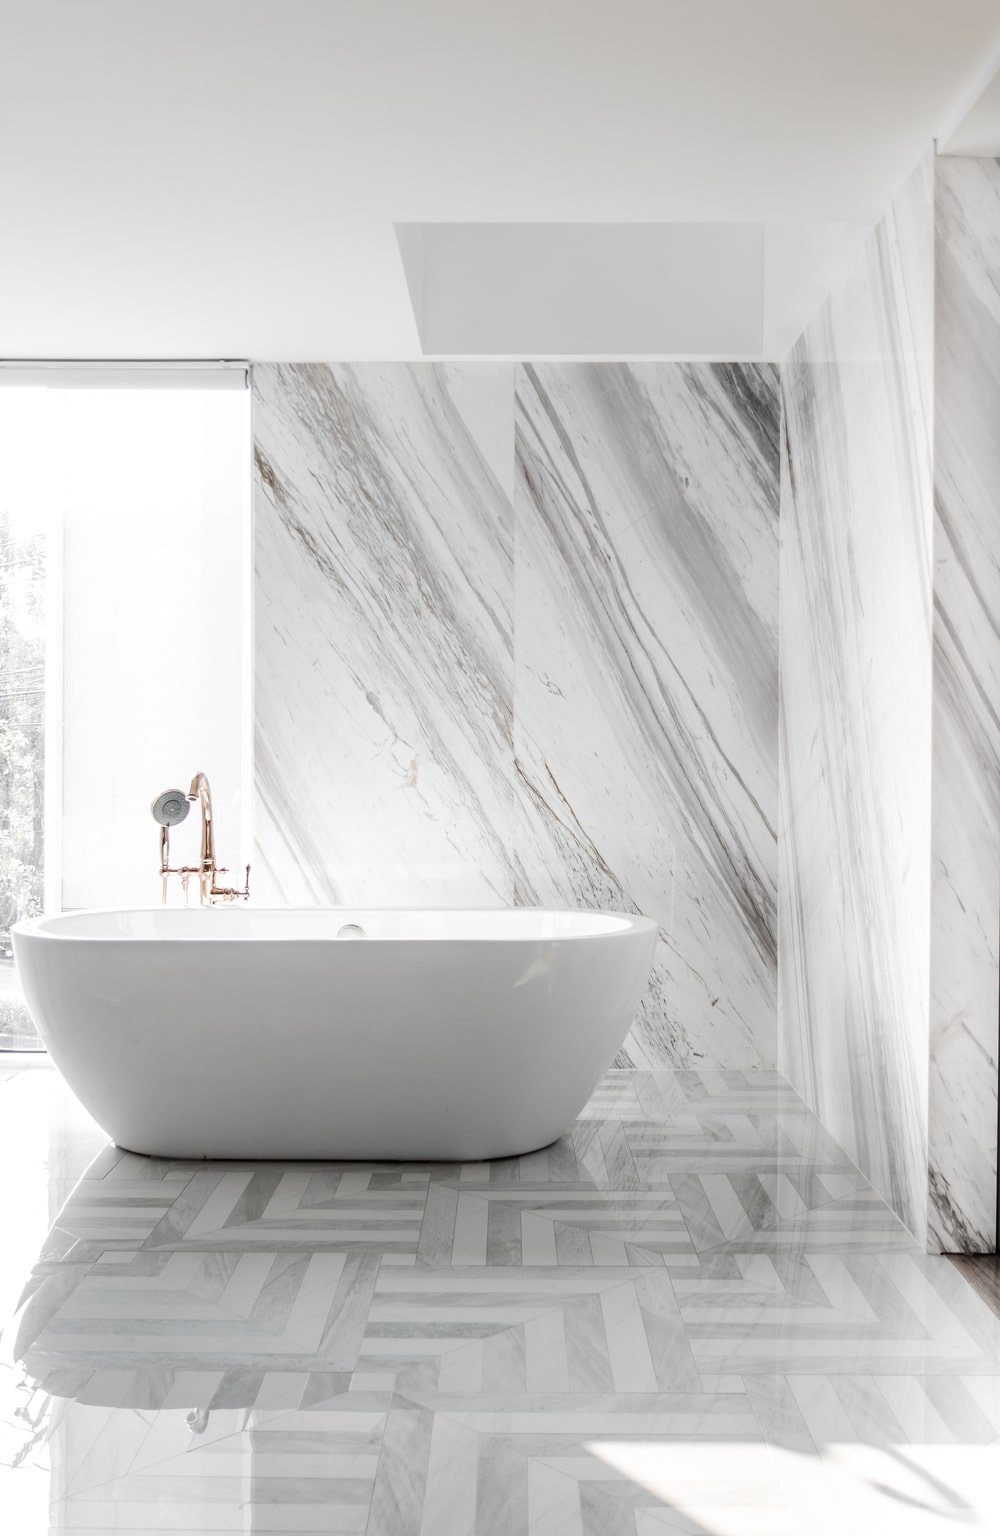 This is another look at the white porcelain freestanding bathtub that stands out against the white marble wall and patterned flooring tiles.